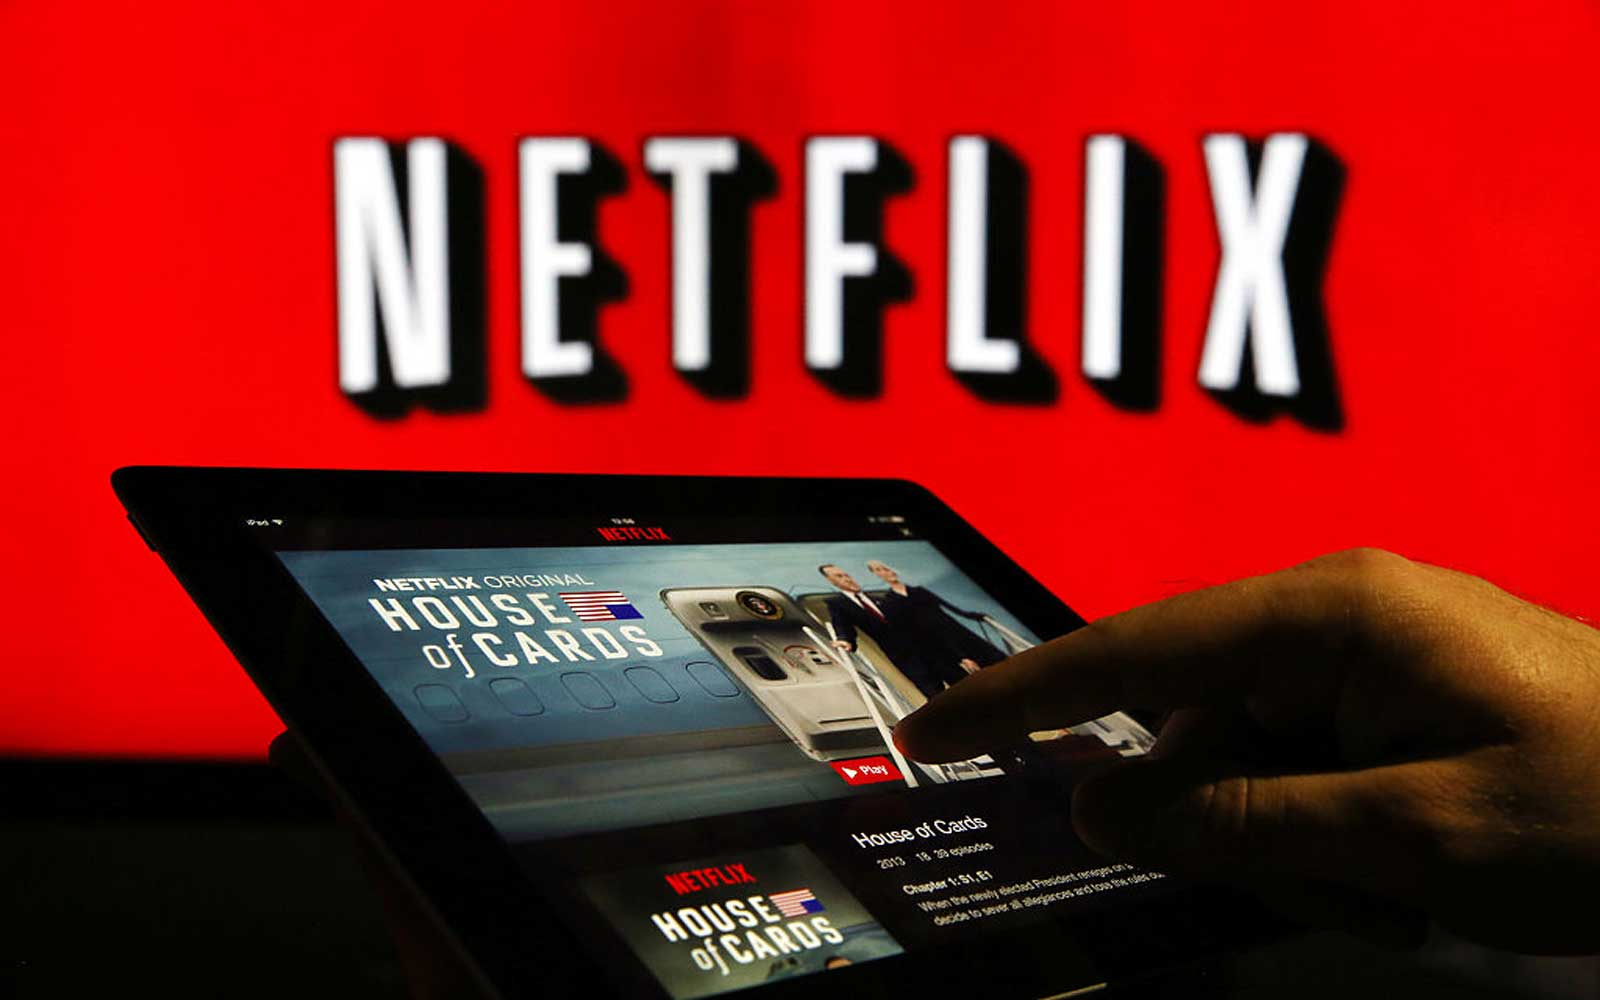 A man prepares to watch House Of Cards on the Netflix Inc. application on a tablet device in this arranged photograph in London, U.K., on Tuesday, Jan. 5, 2016. Netflix Inc., which delivered the best return of any stock in the S&P 500 last year, has ambit